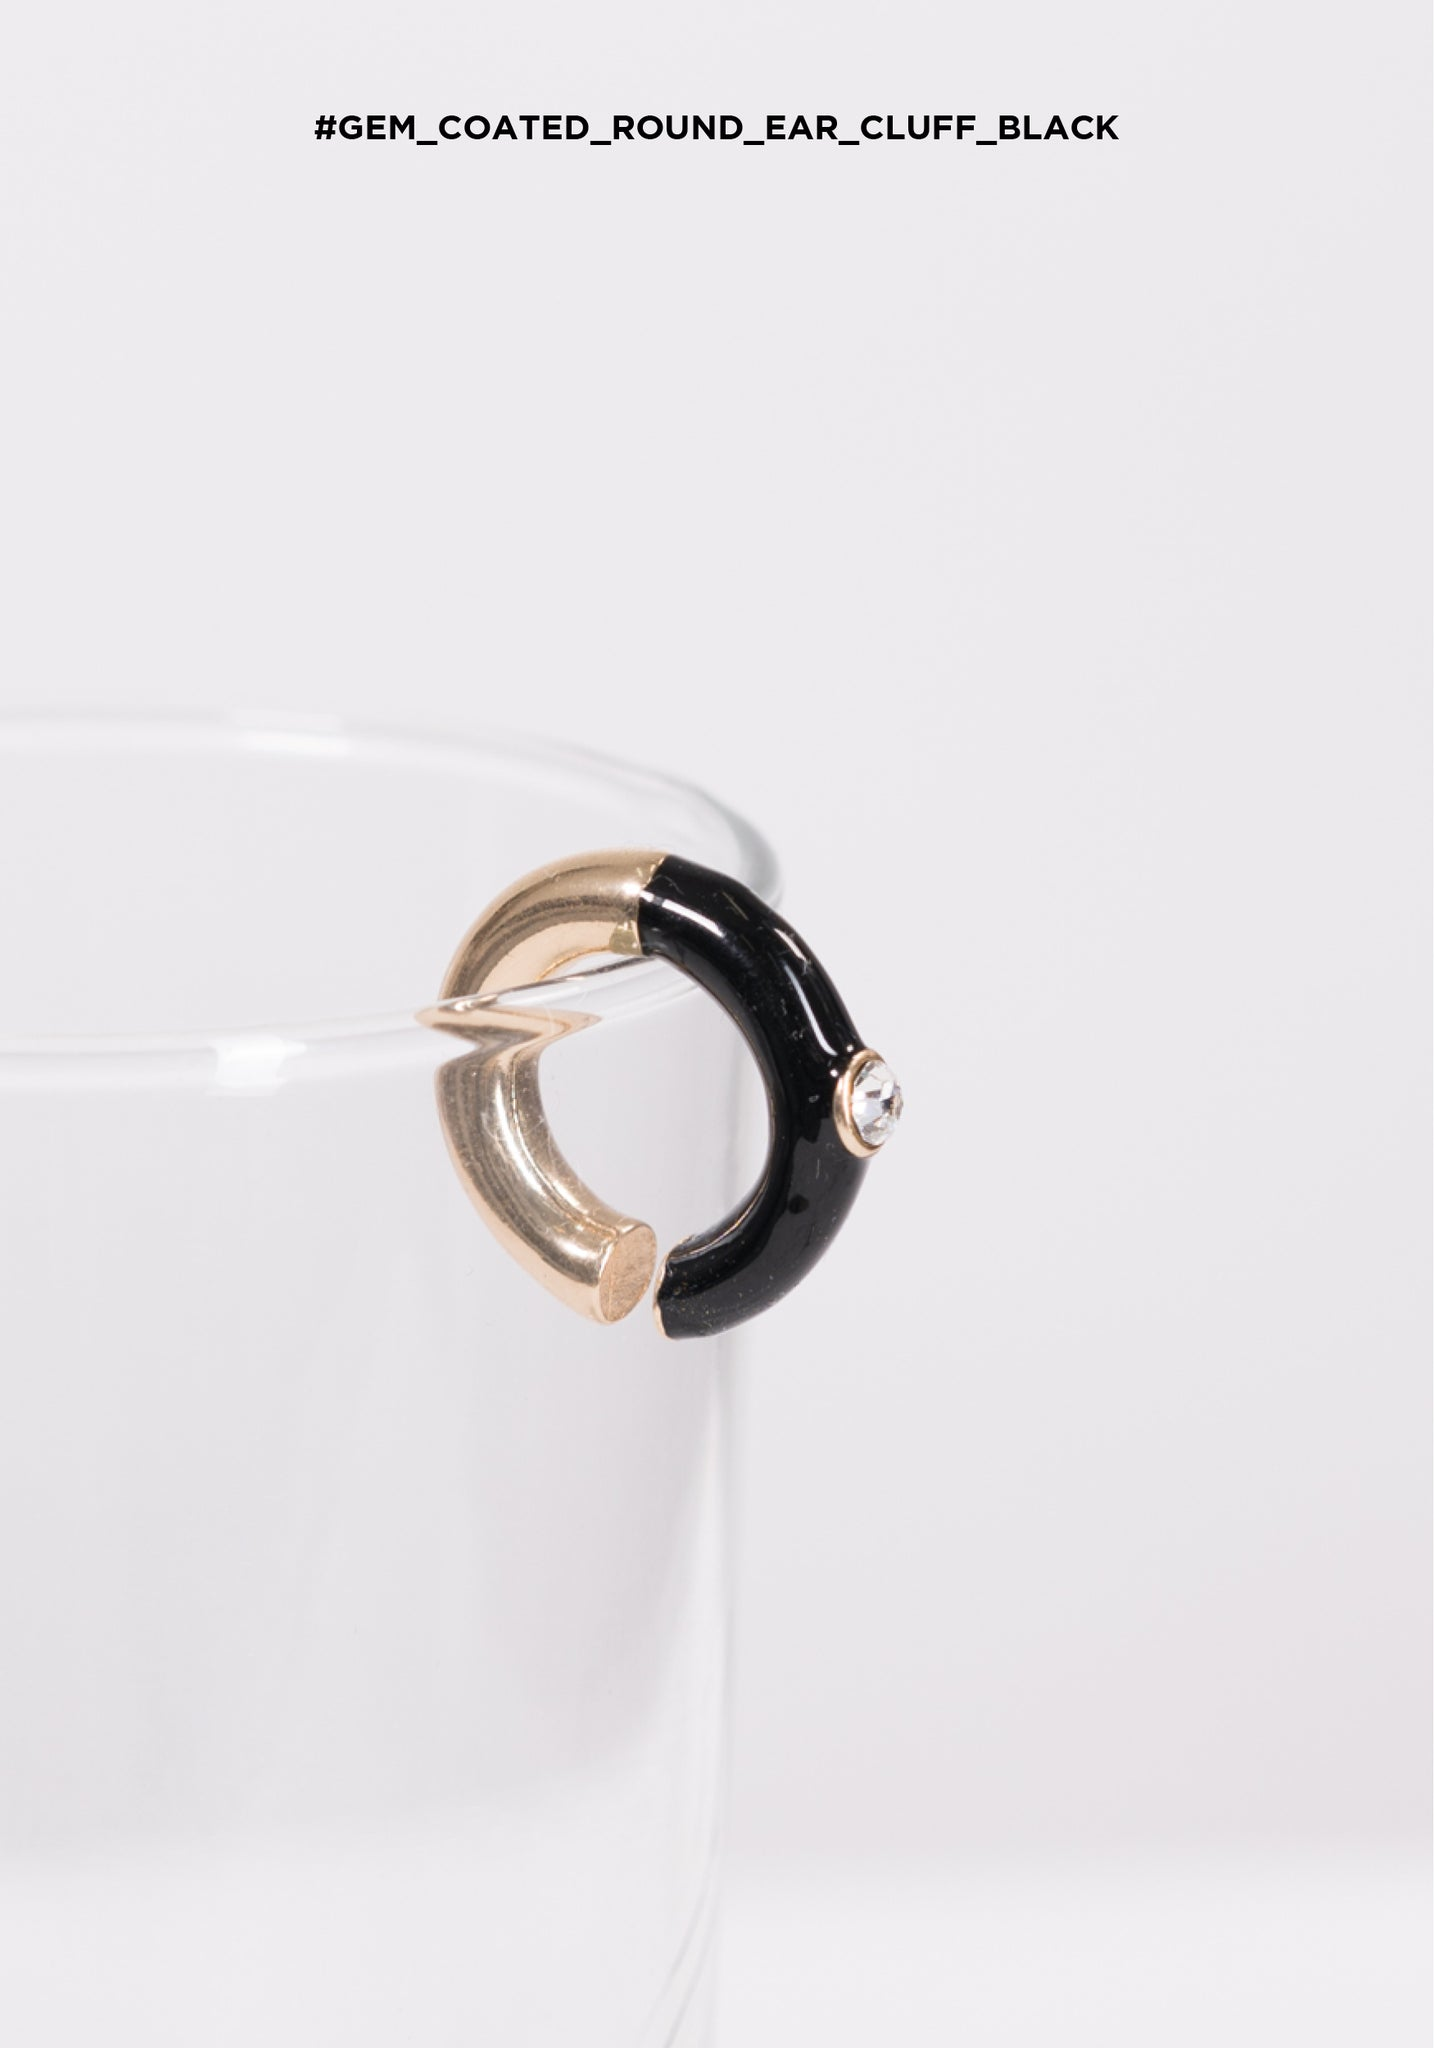 Gem Coated Round Ear Cuff Black - whoami